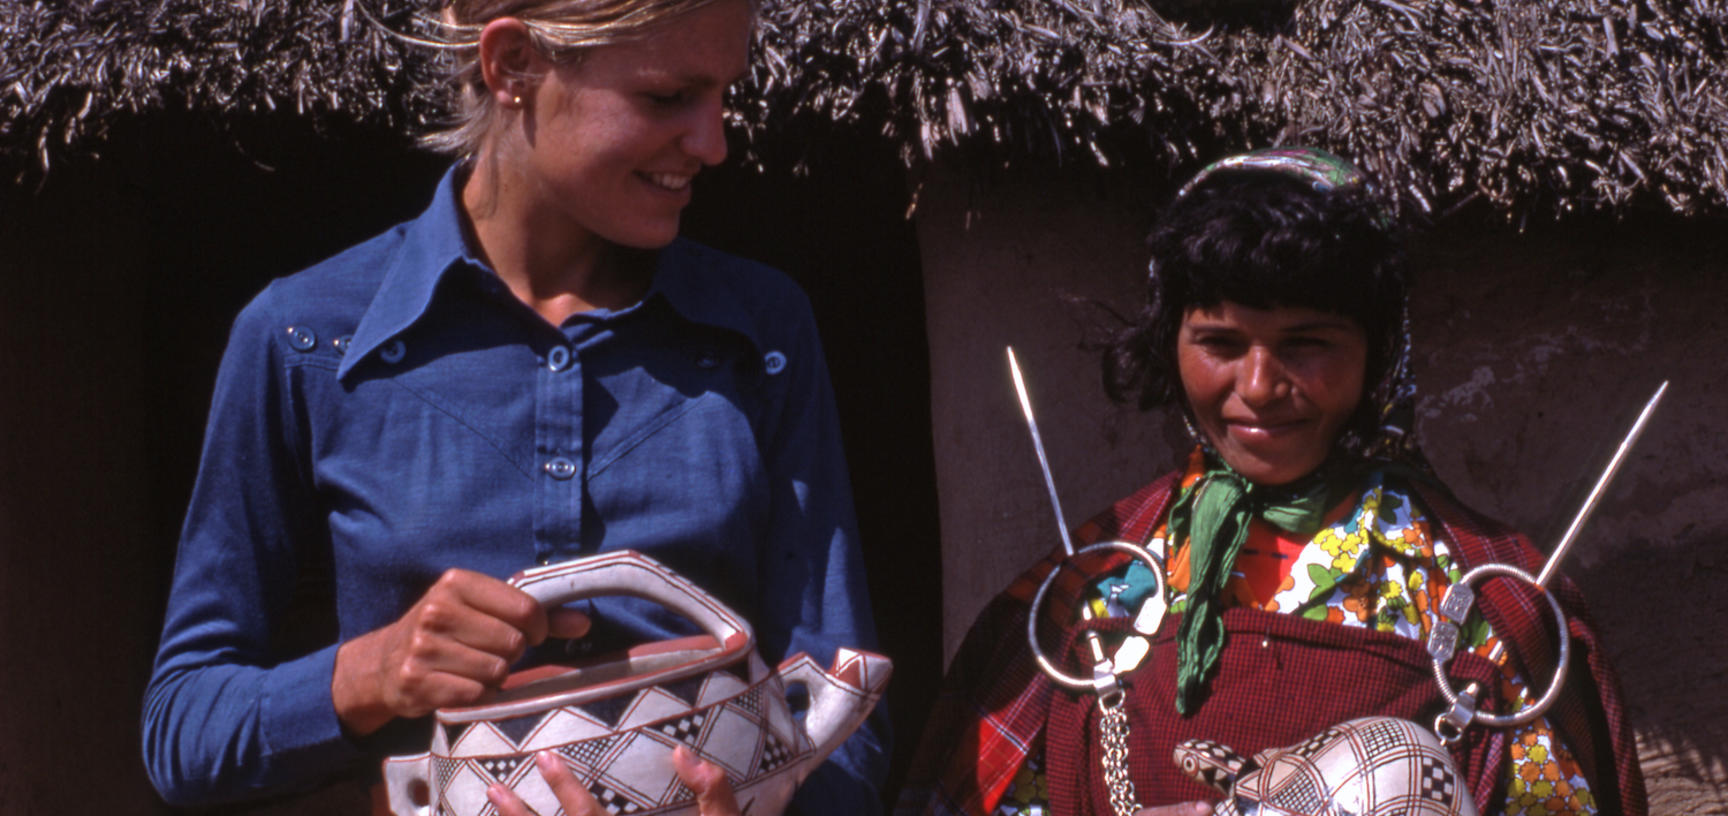 Two women holding pottery items